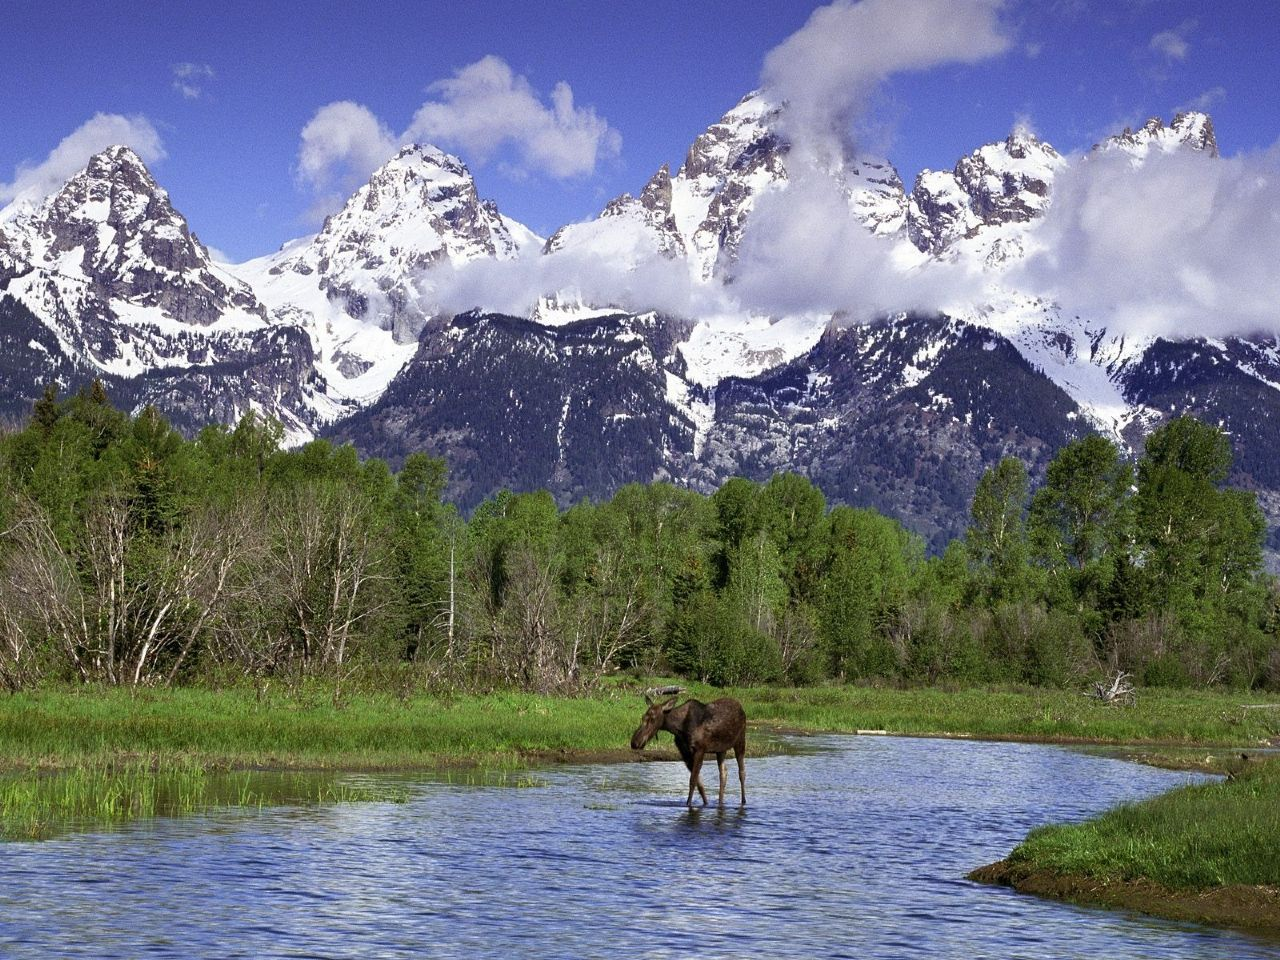 Eva Brosnan: Grand Teton National Park High Quality Wallpaper #644021.